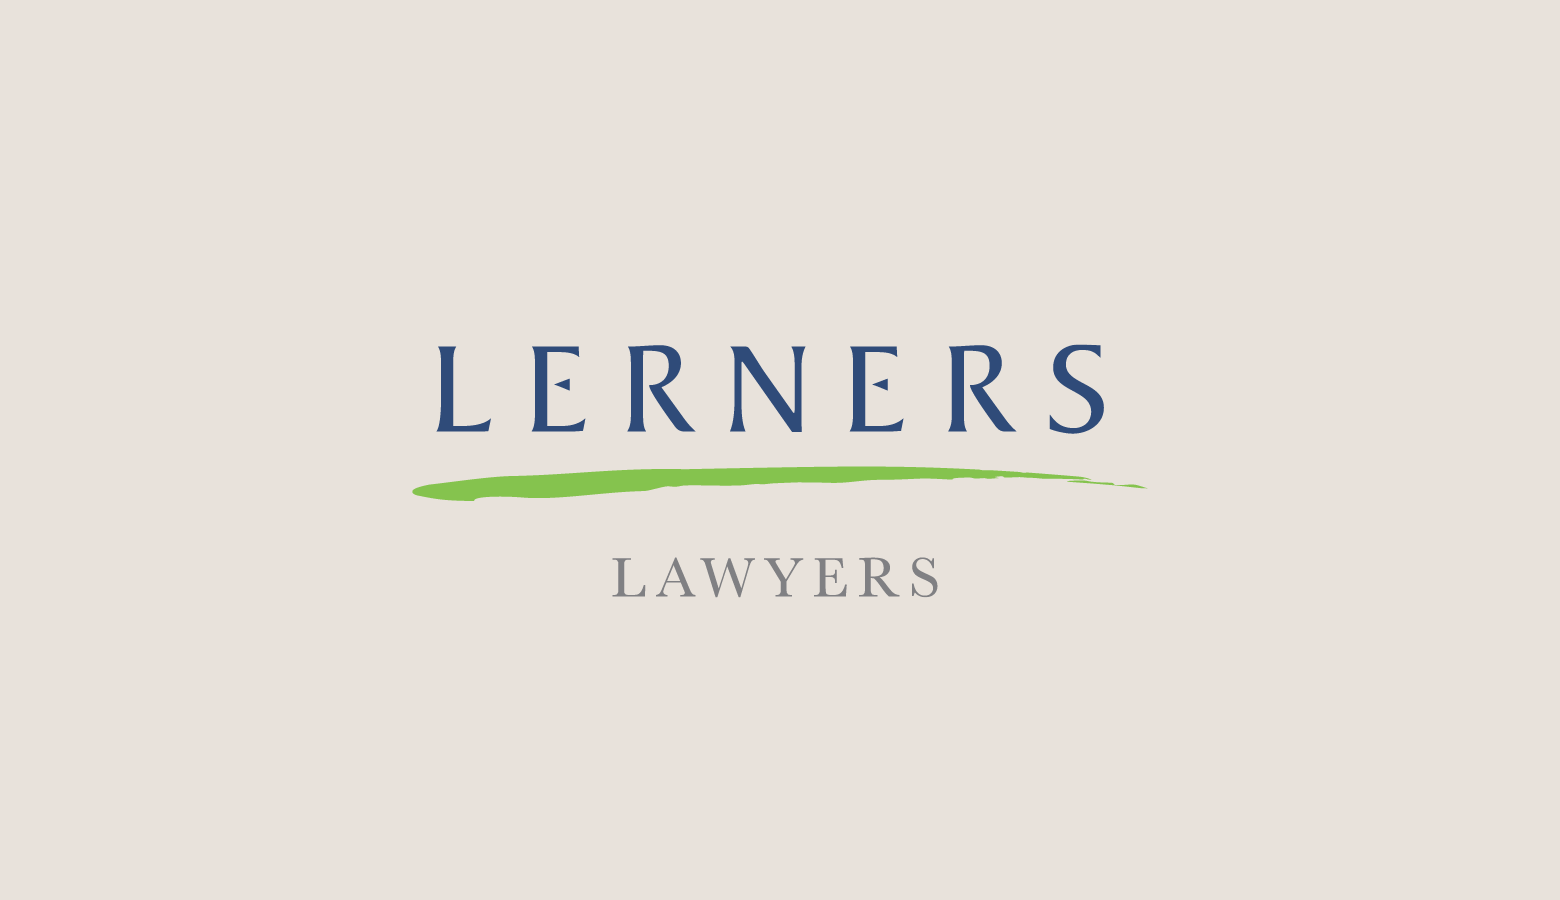 Lerners